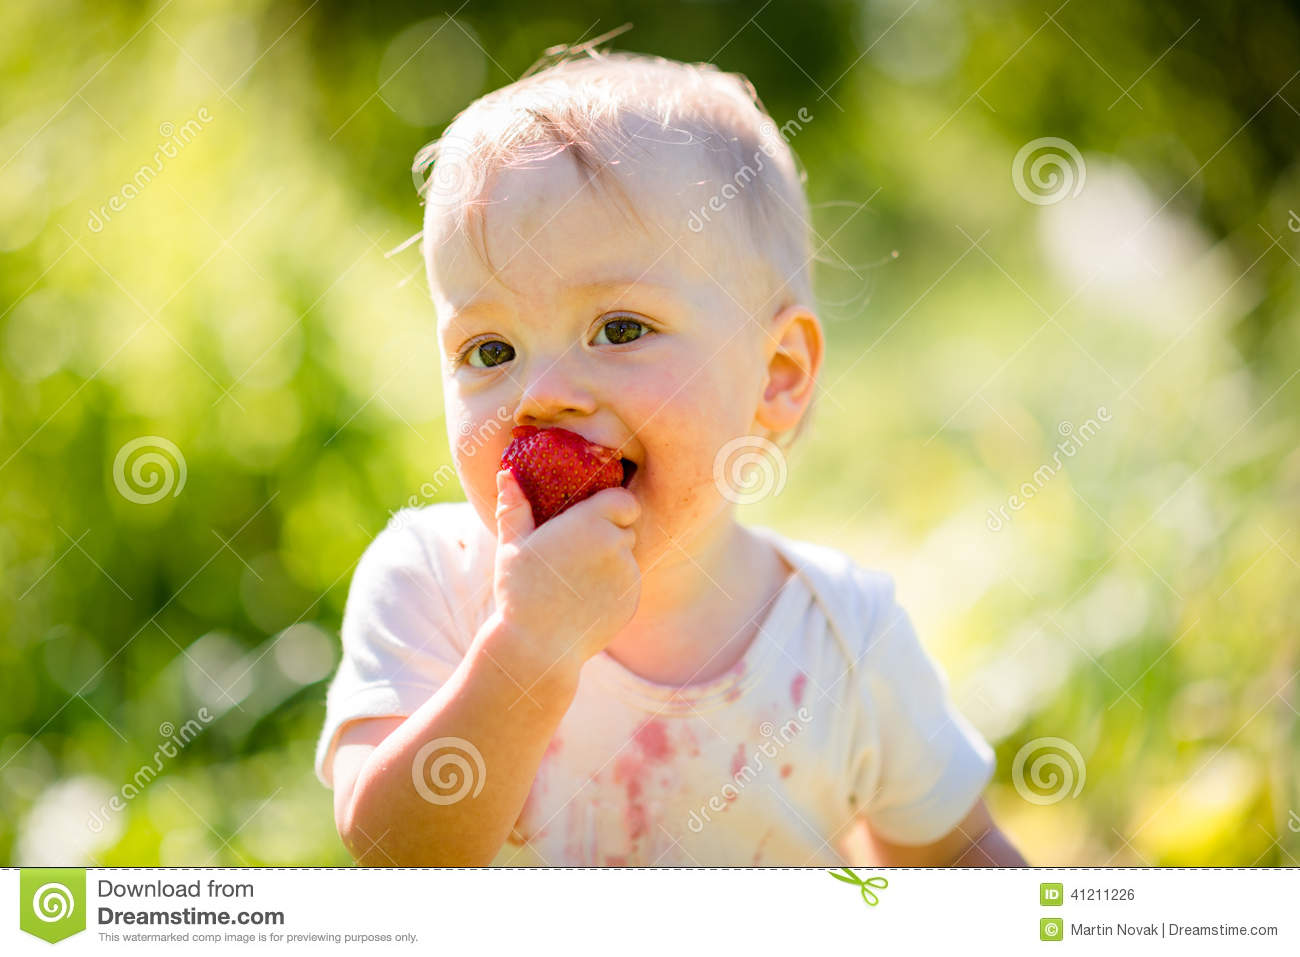 Kid Eating Food Smiling